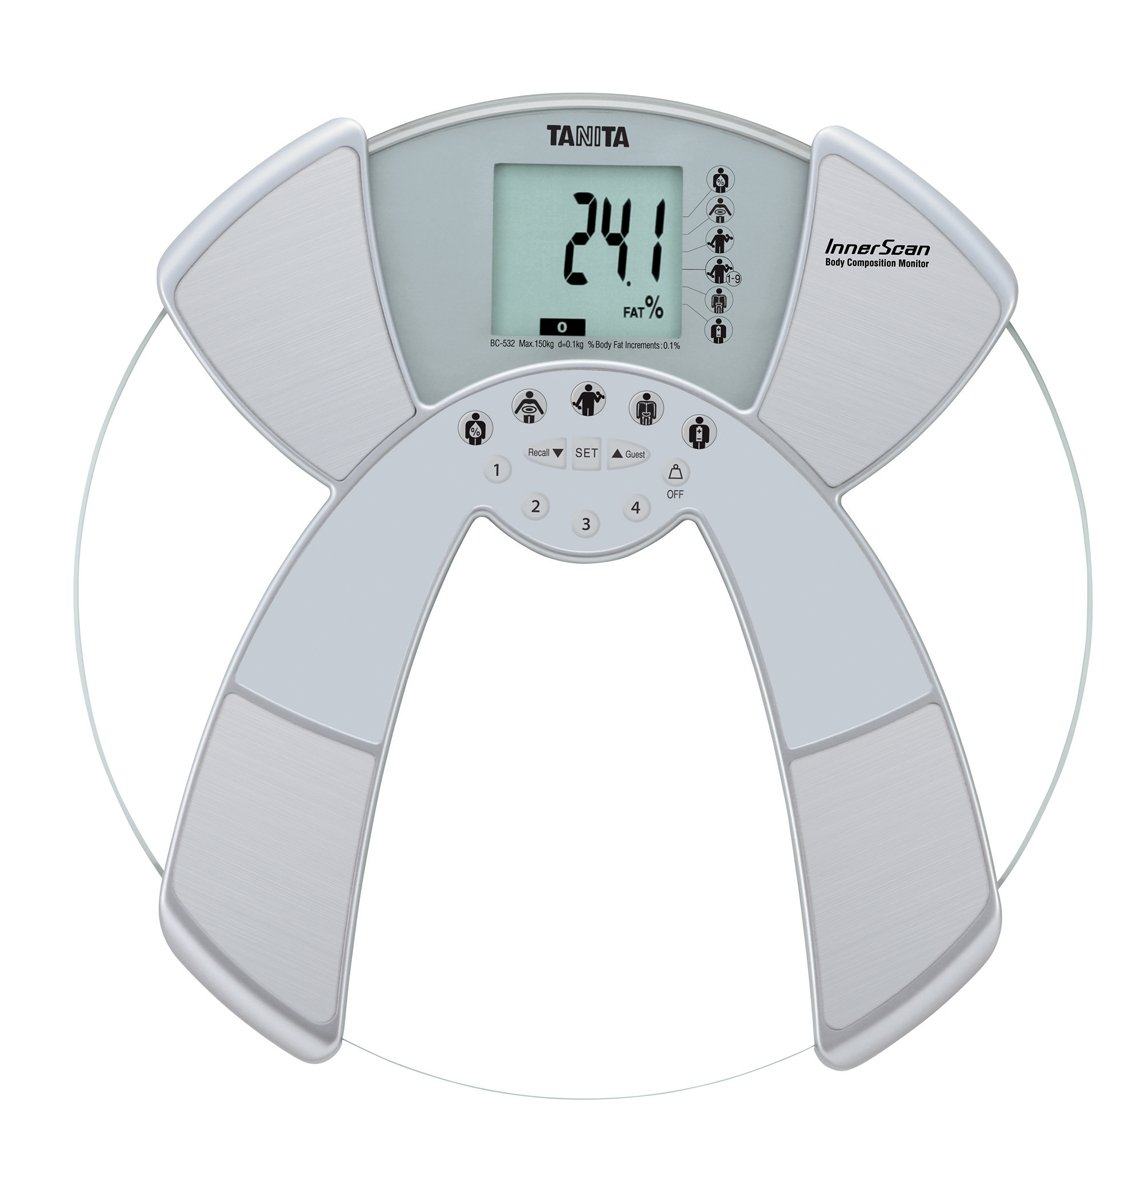 Tanita BC532 Body Composition Glass Bathroom Scales BC 532 Tanita BC532.4 Body Fat Counters Health & Fitness Monitors